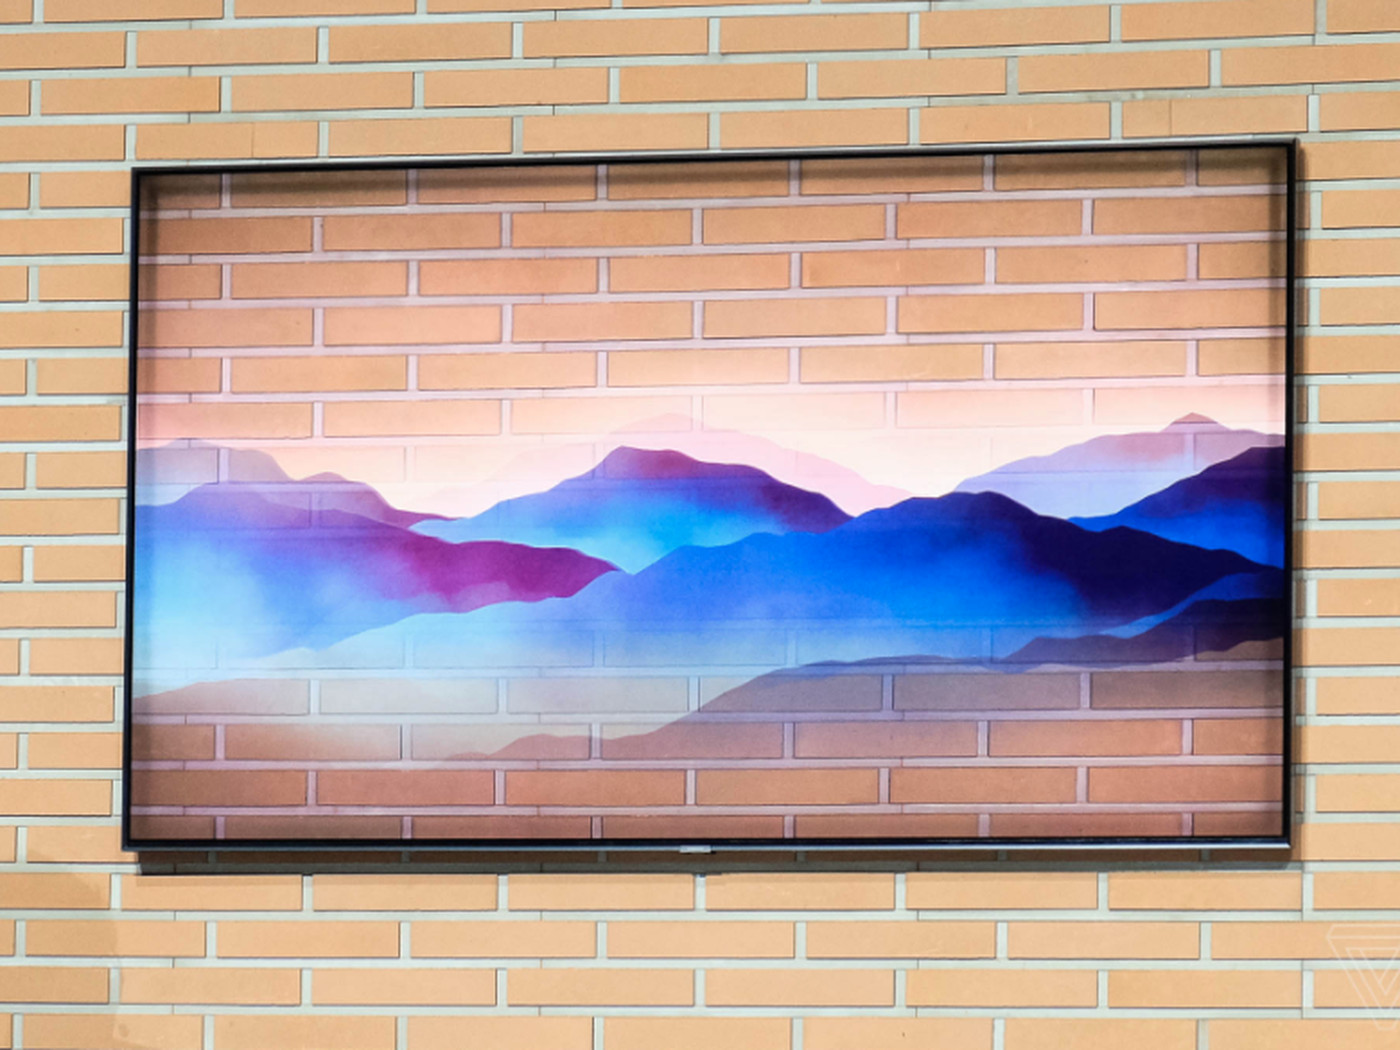 Samsung S 2018 Qled 4k Tvs Can Blend Into Your Wall And Control Your Smart Home The Verge